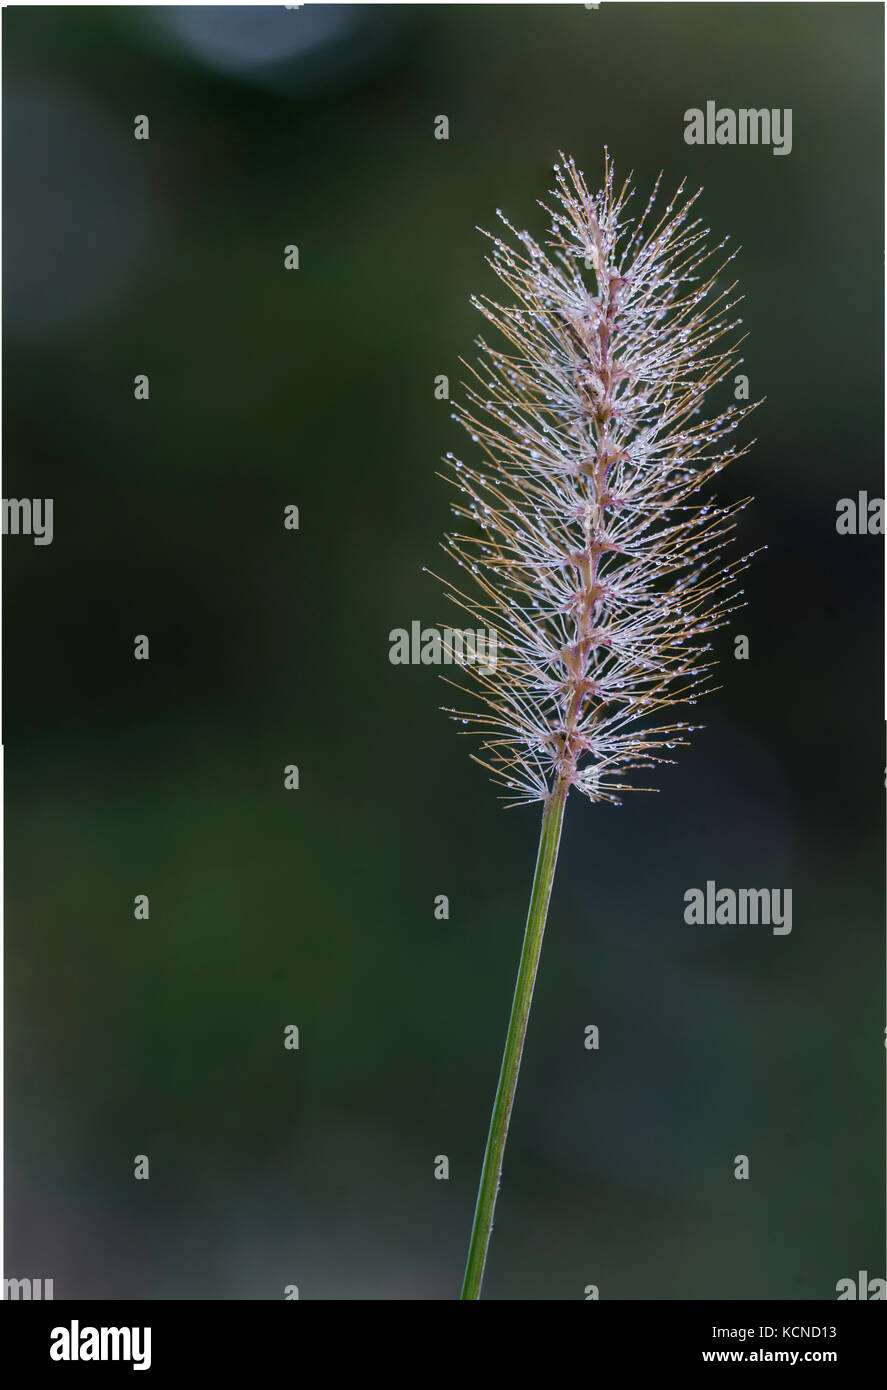 Dew Covered inflorescence, north eastern Ontario, Canada Stock Photo